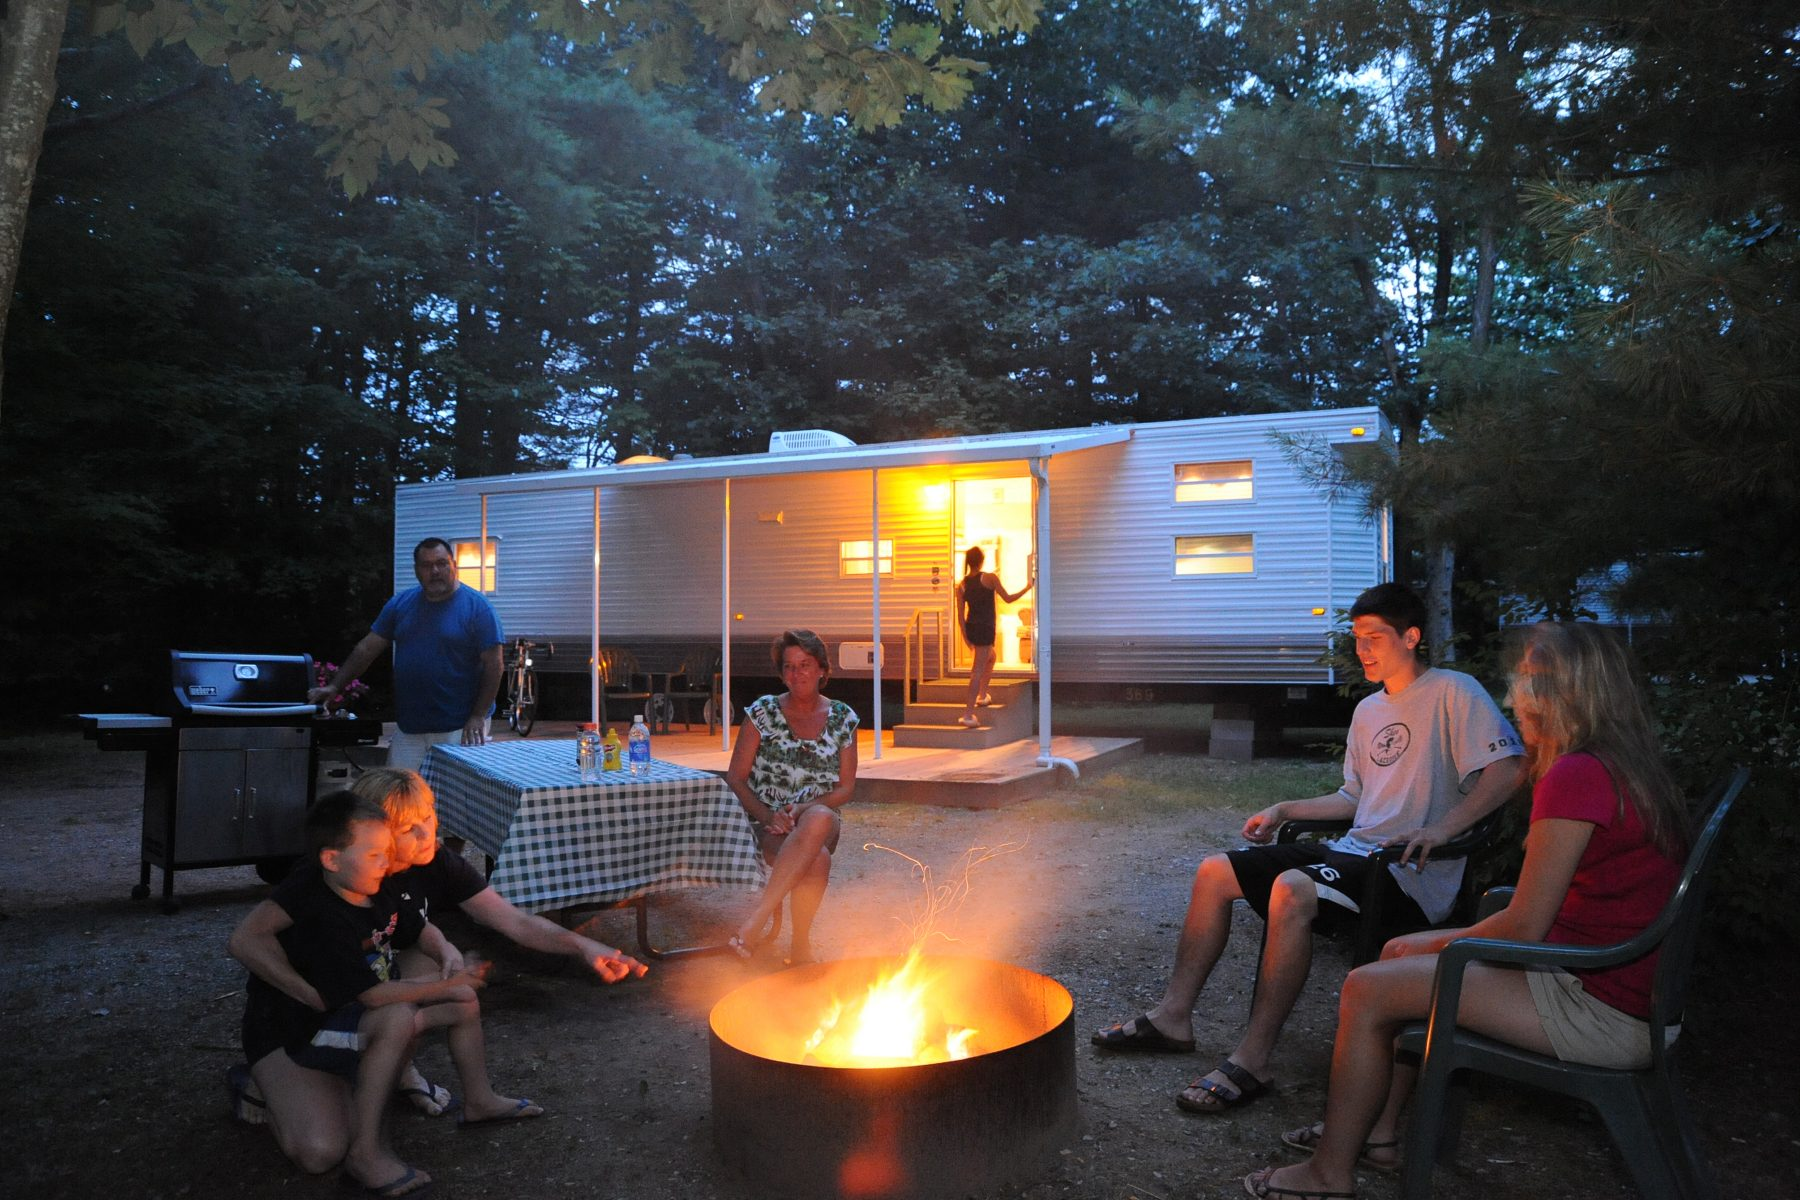 All rental units include fire ring, picnic table, & outside seating